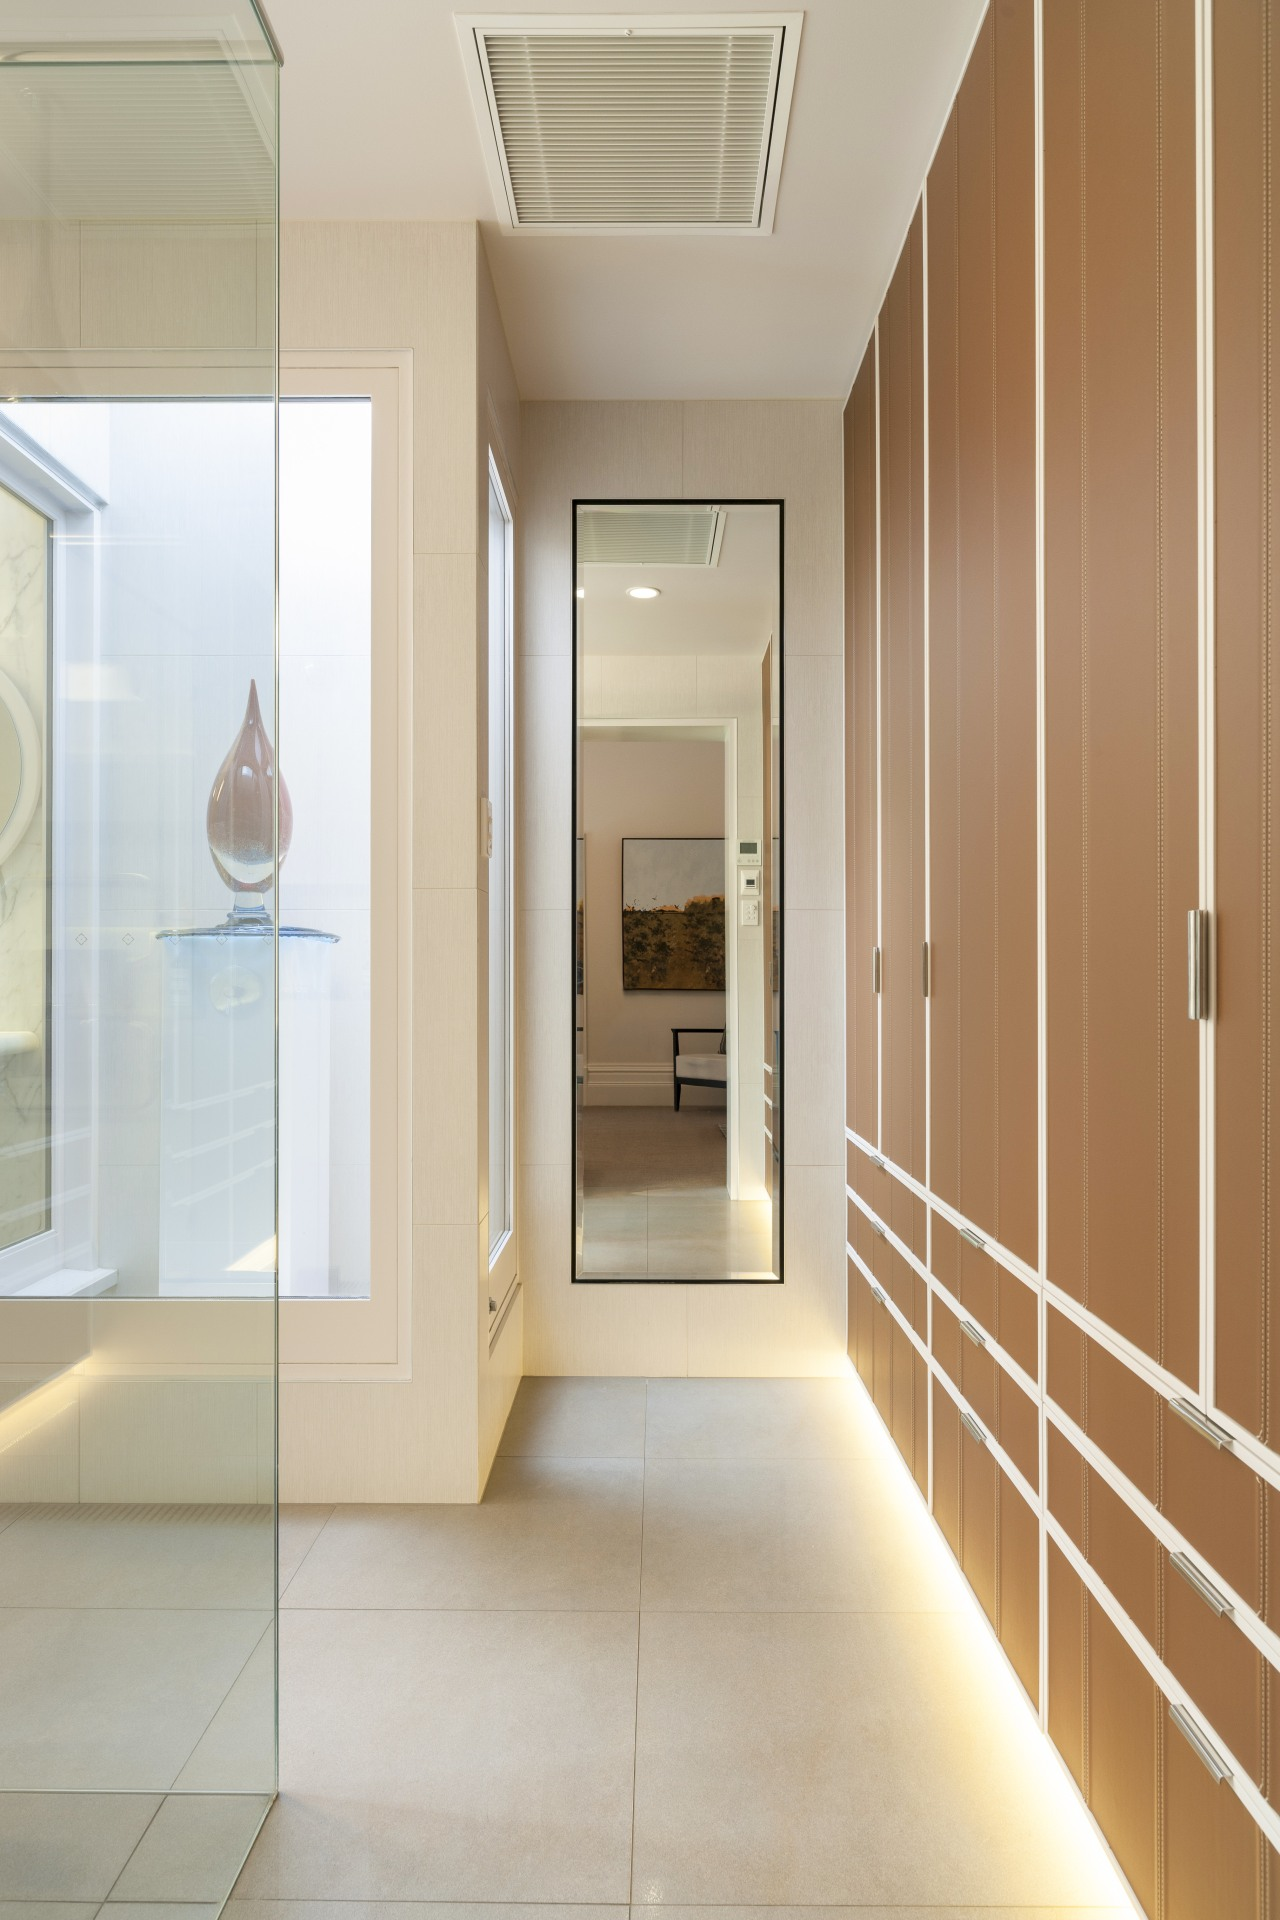 Adjustable shutters optimise light and privacy by turn. ceiling, floor, flooring, interior design, lobby, real estate, gray